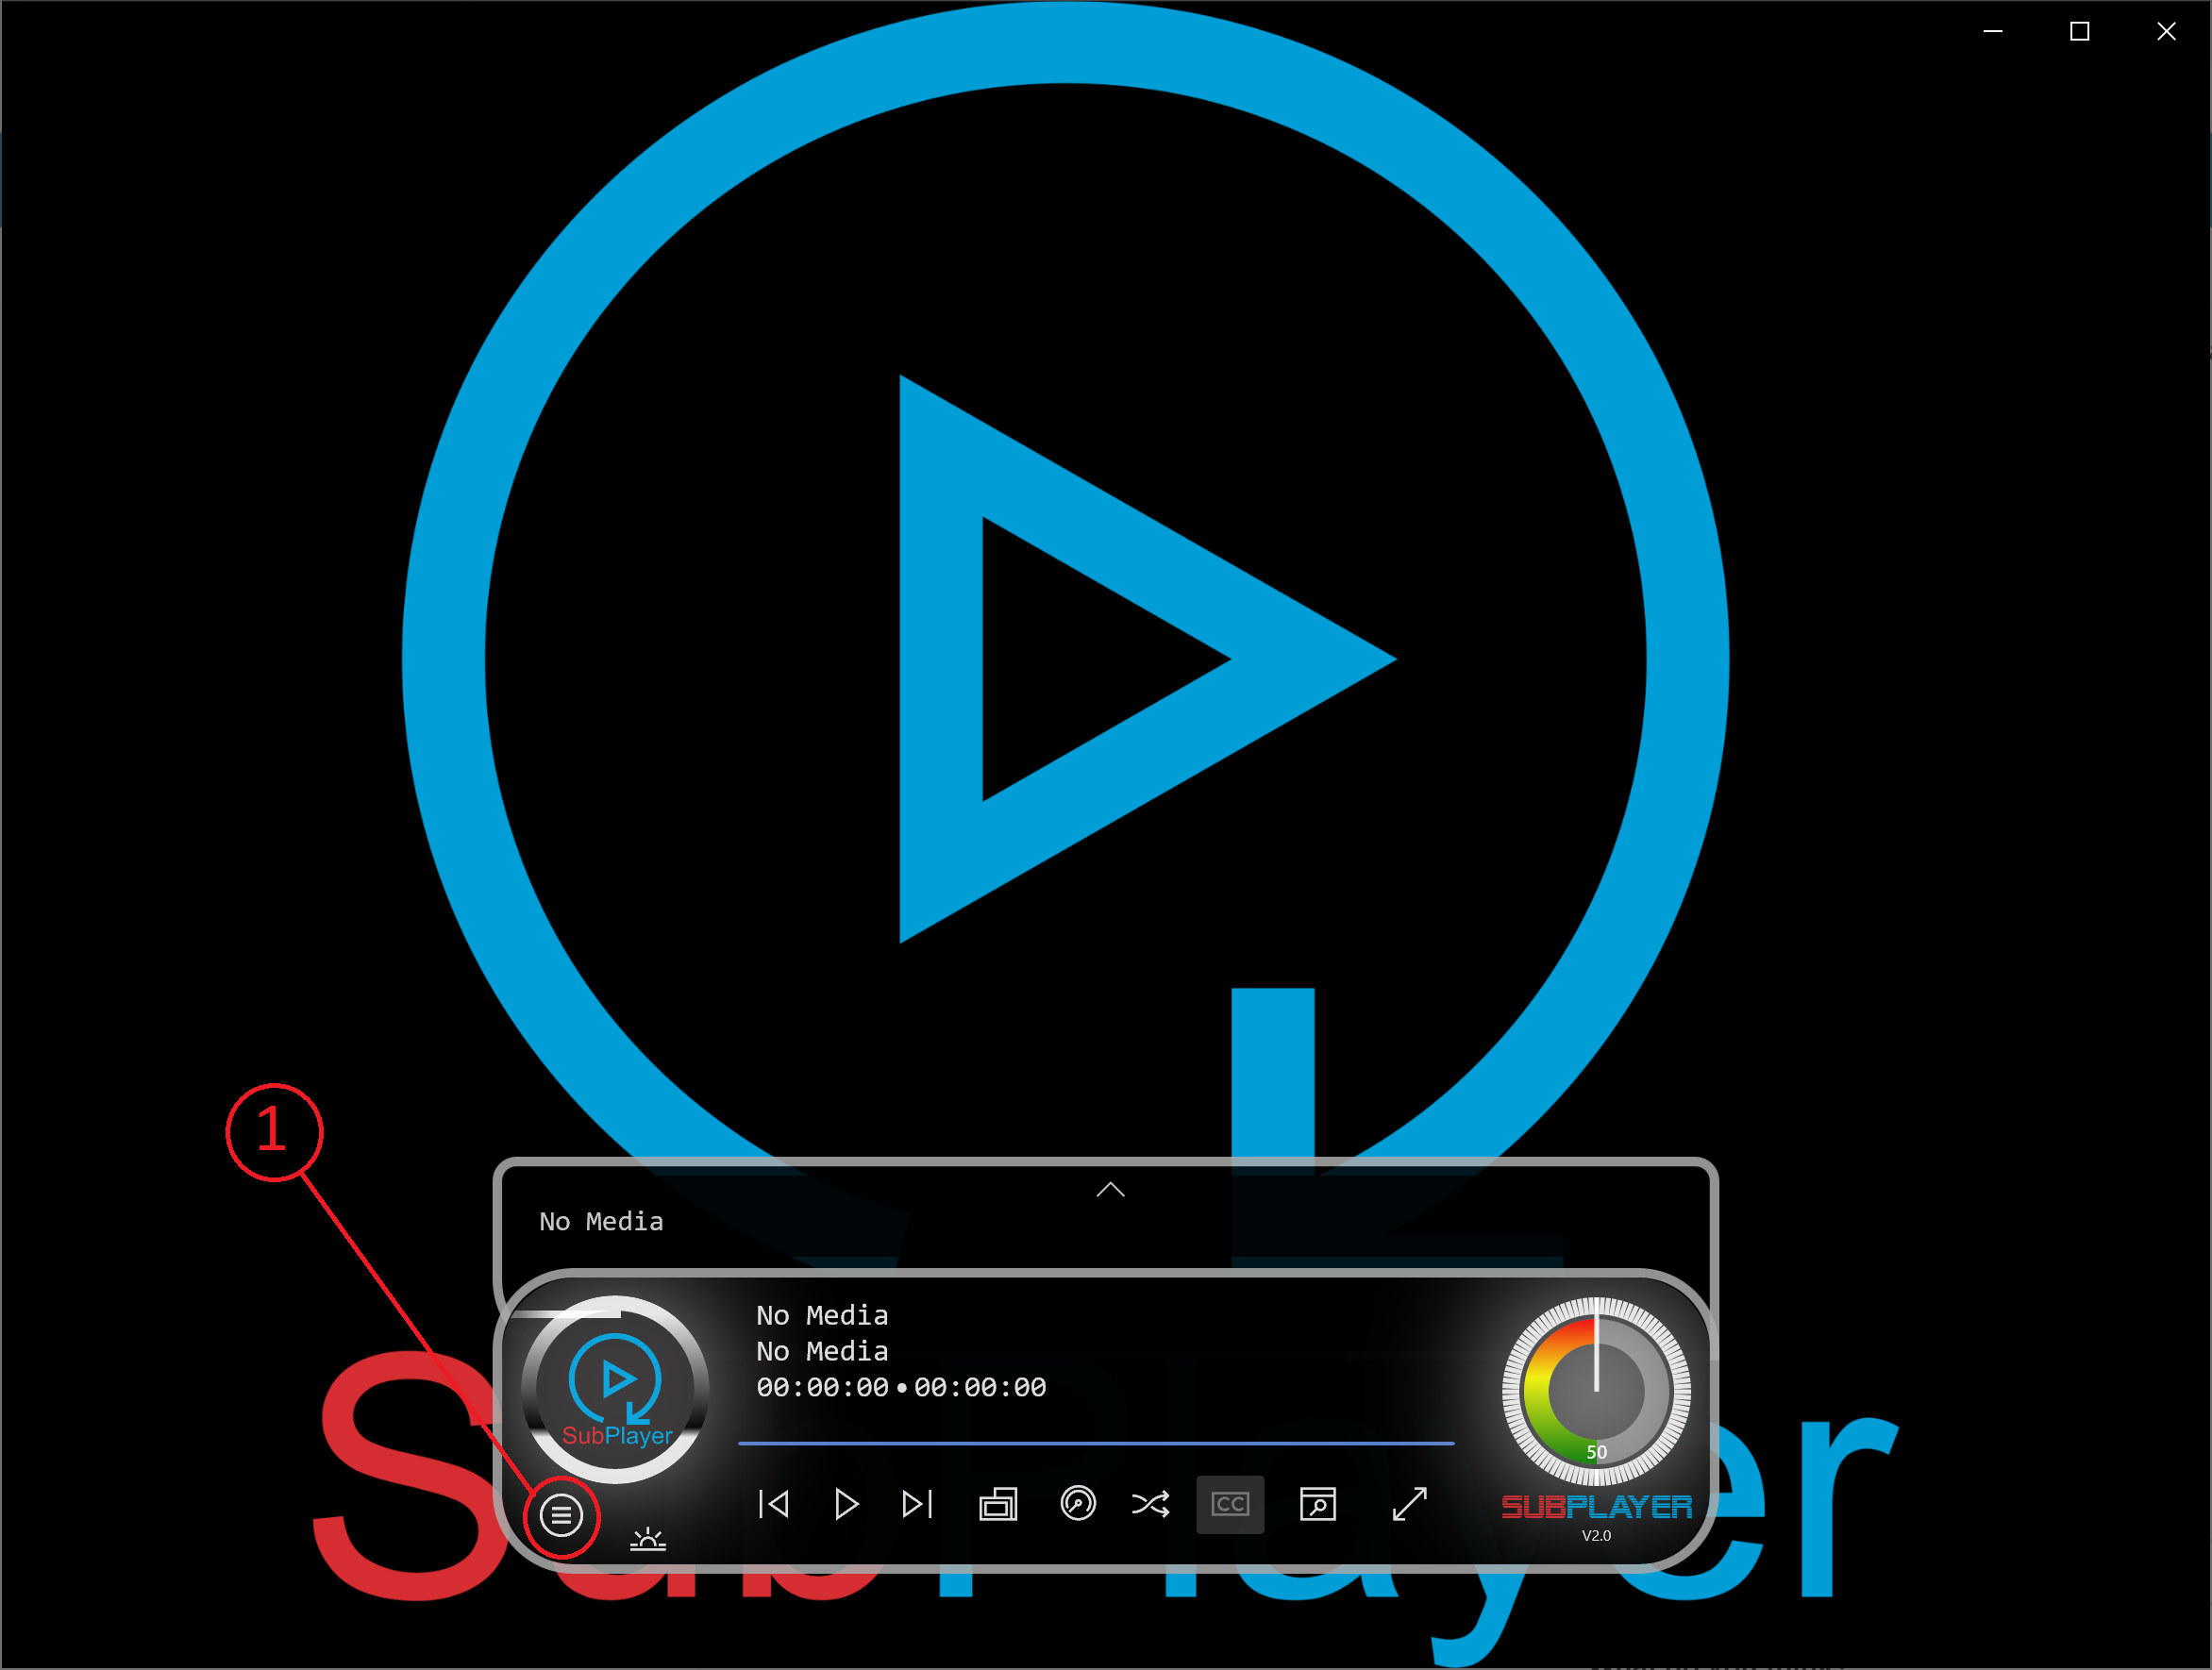 subplayer for internet radio stations